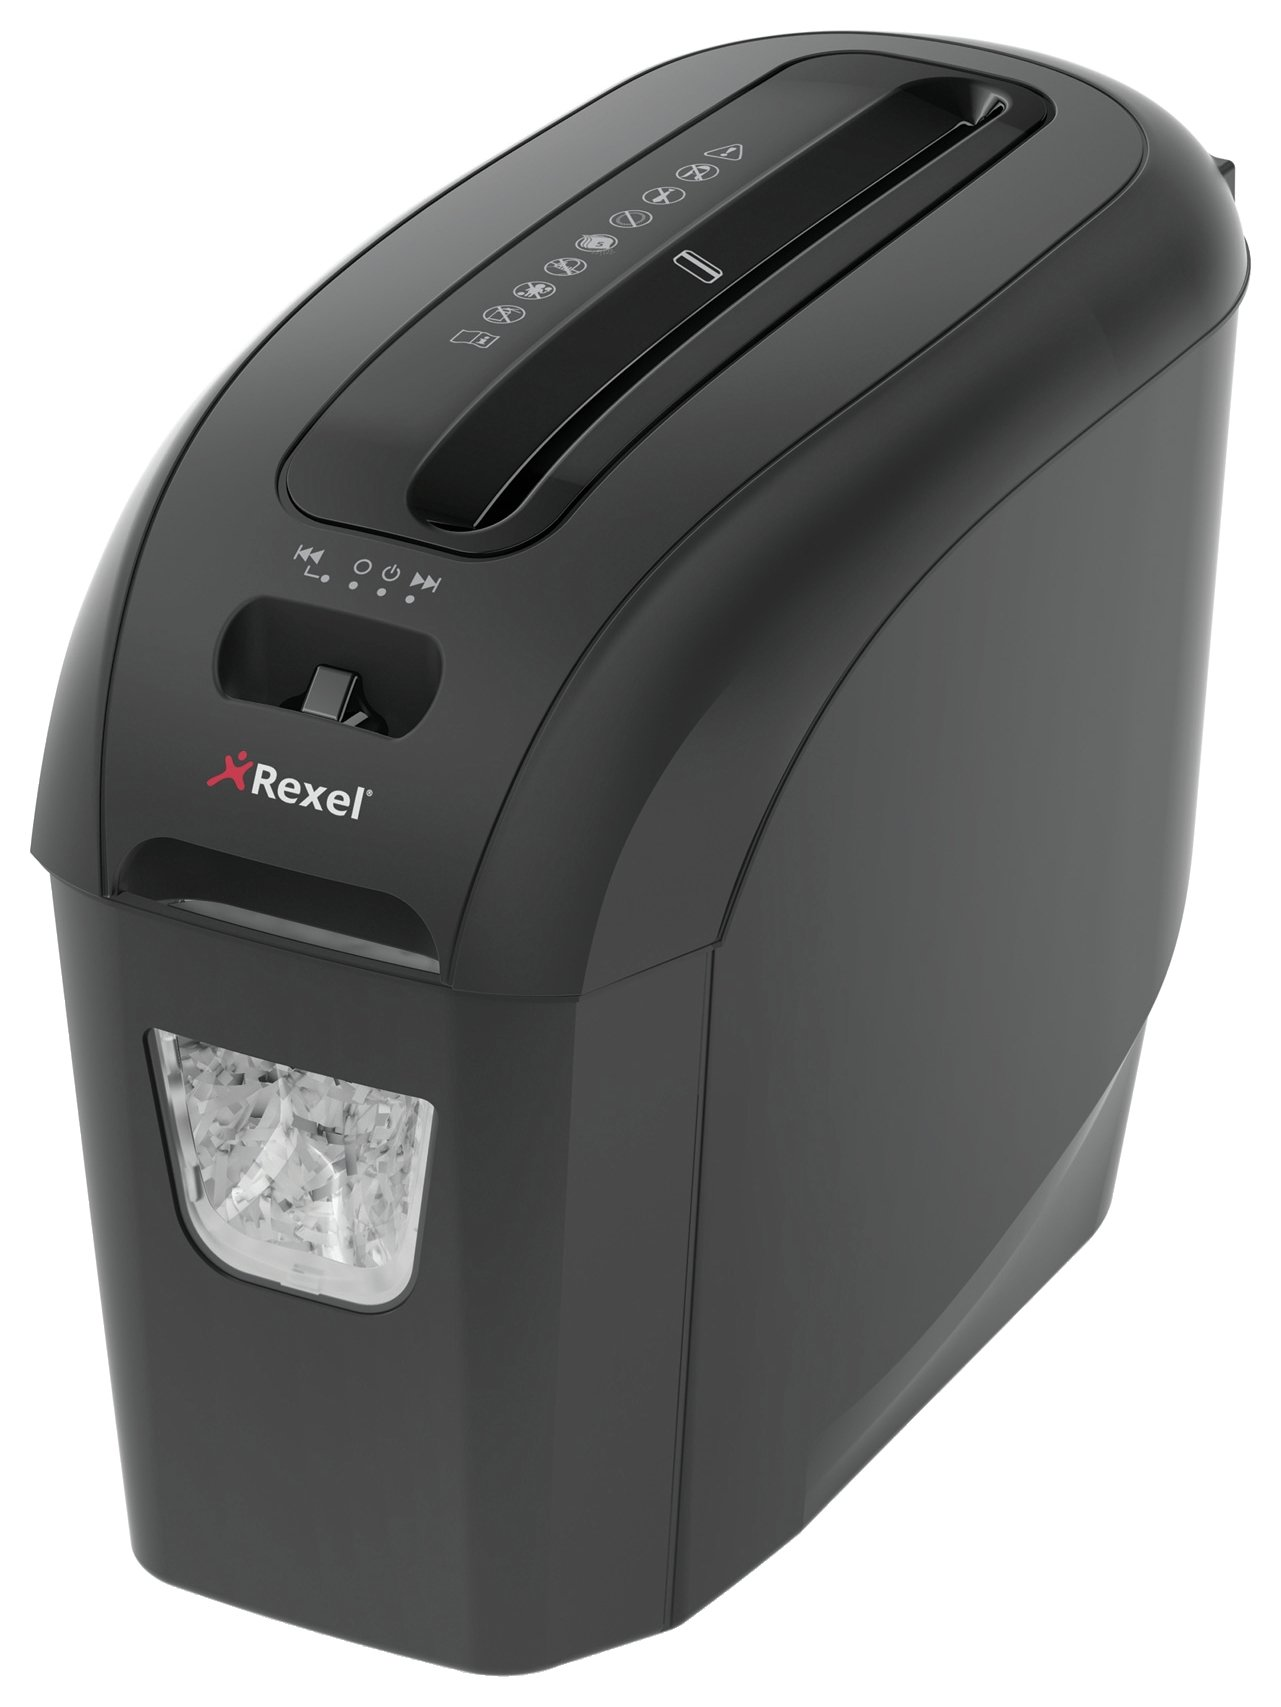 Image of Rexel ProStyle Plus 5 Shredder.